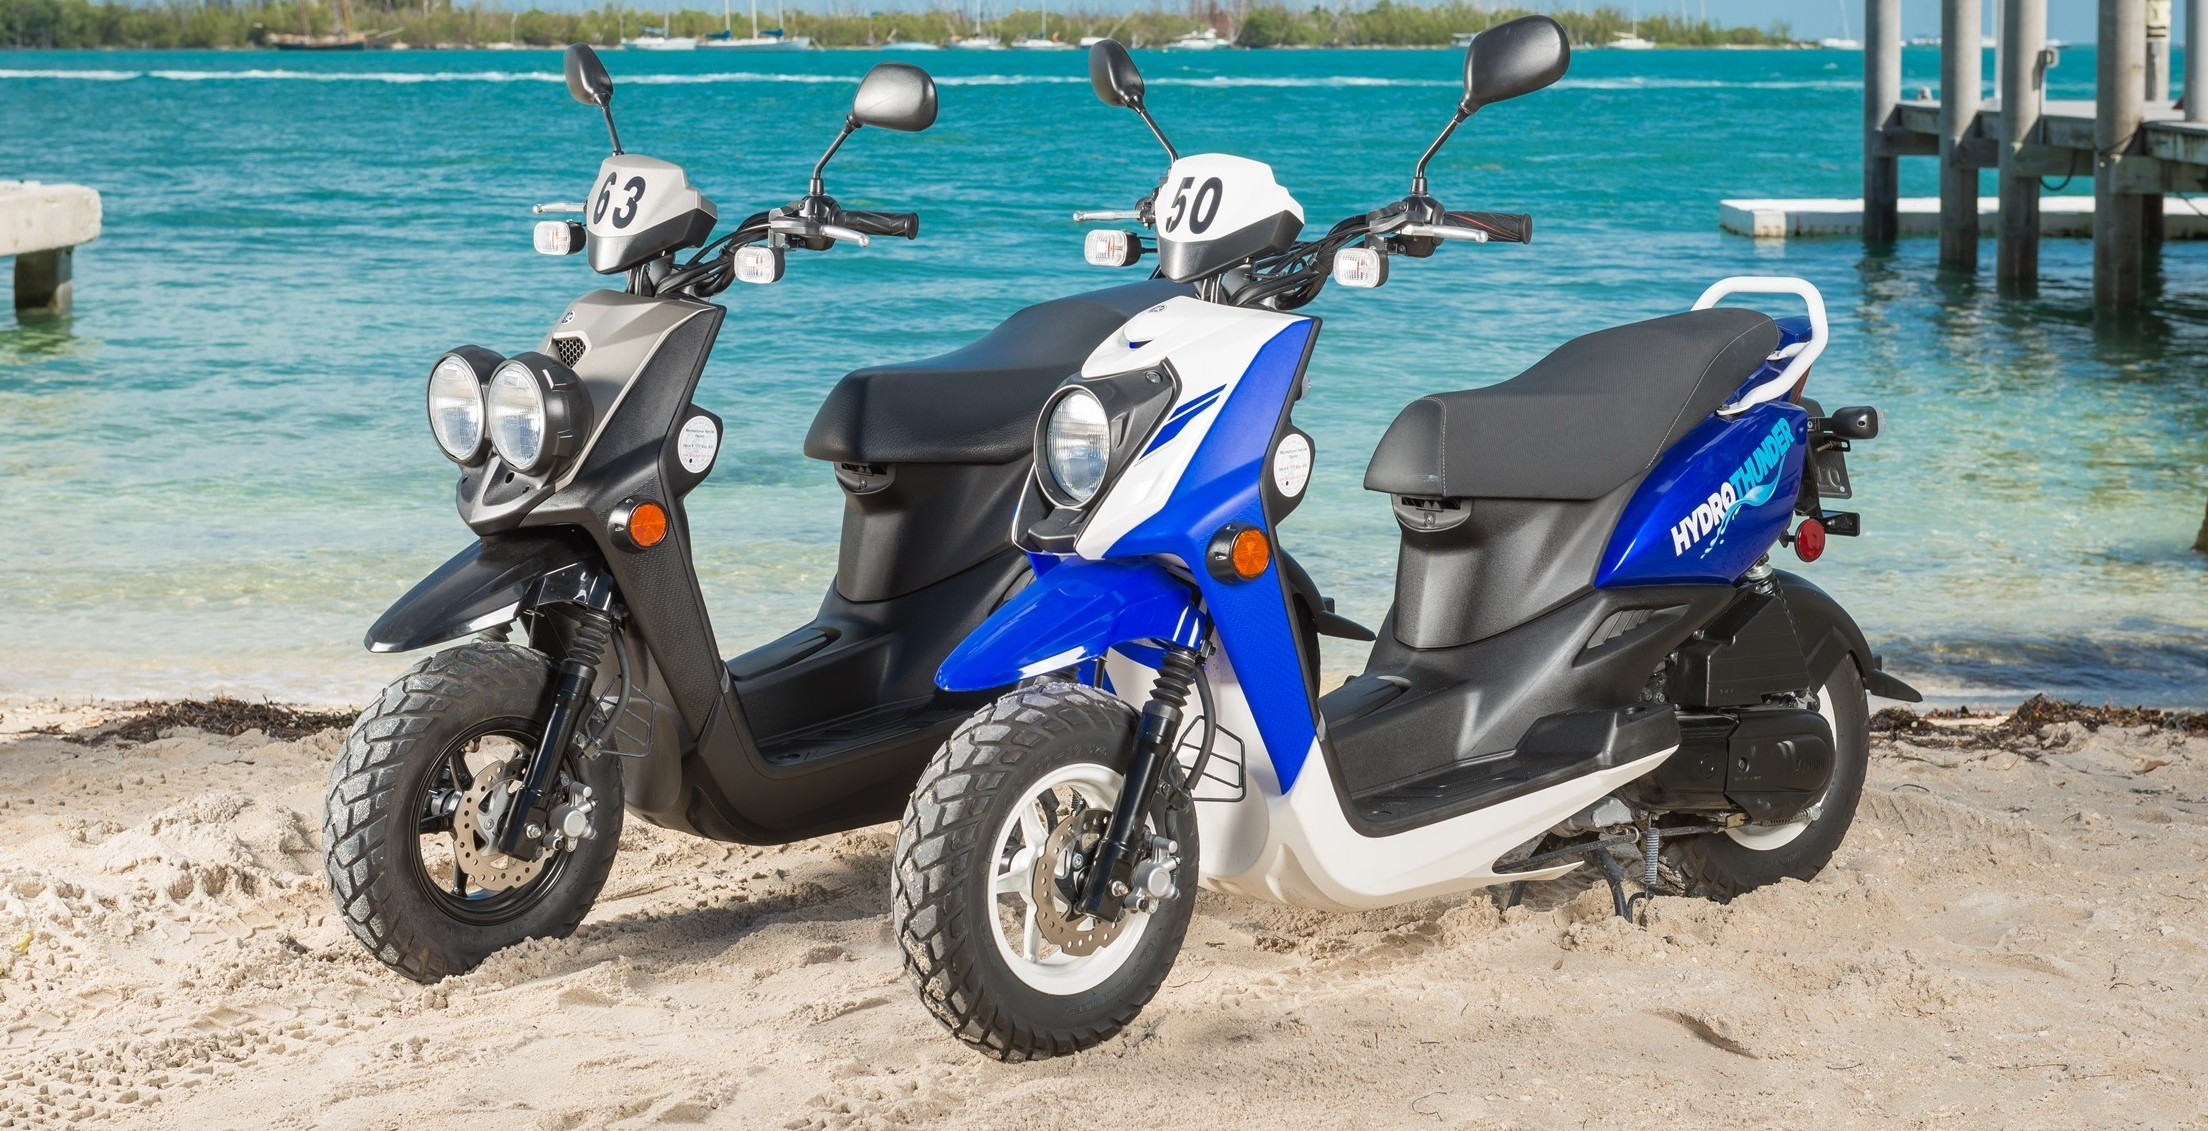 Yamaha Scooters In Key West